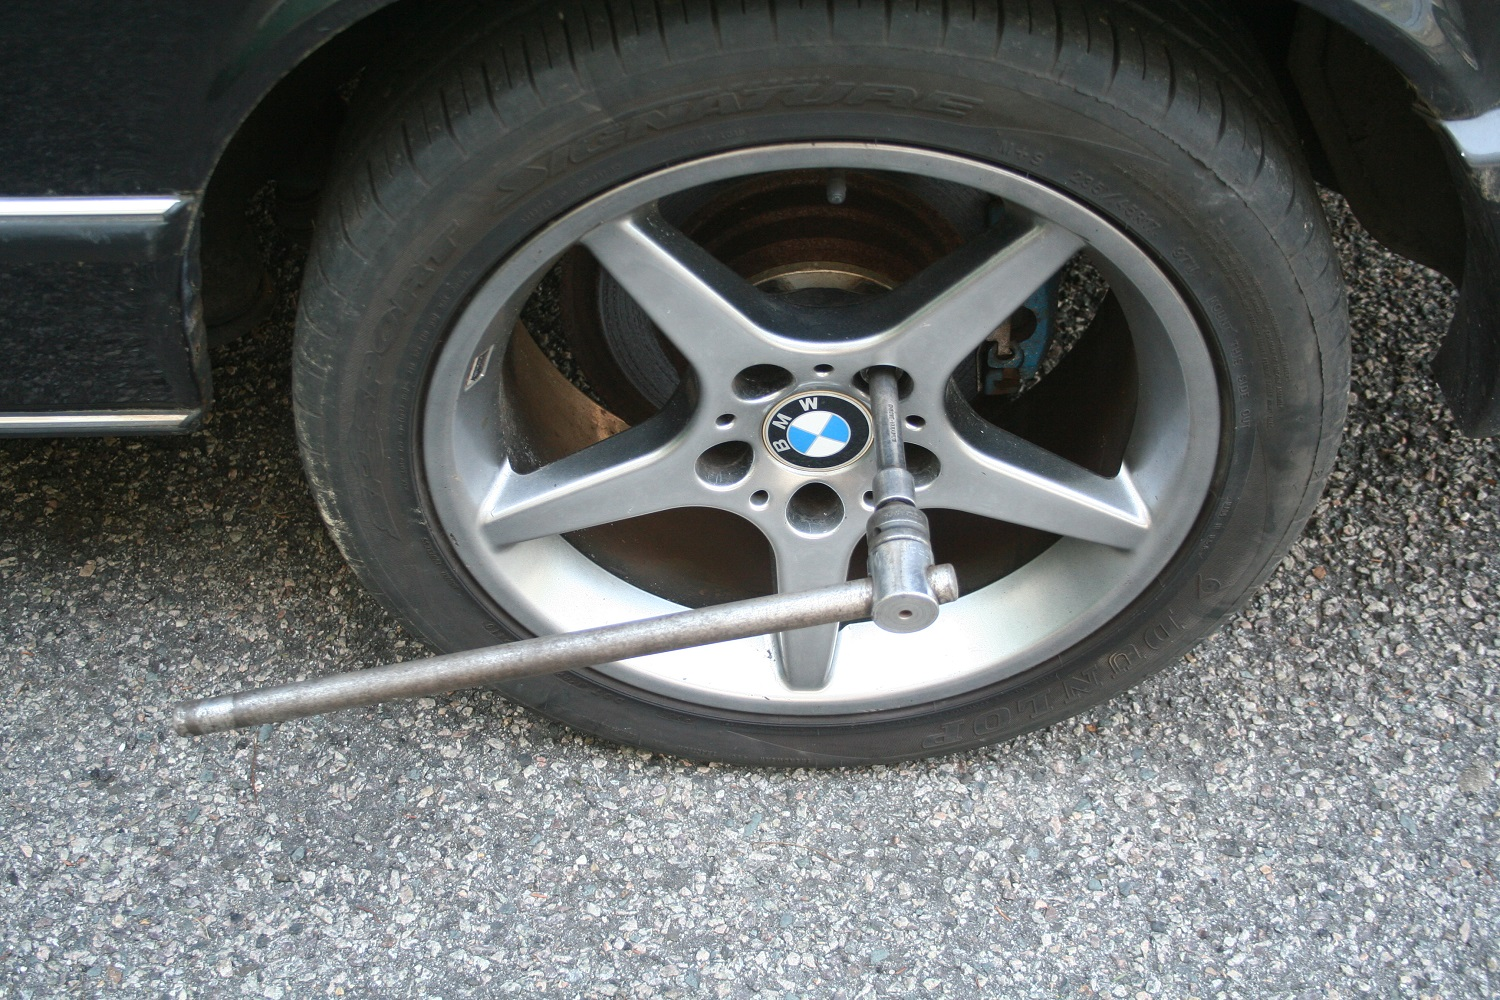 A good breaker bar is way better for cracking lug nuts loose than the flimsy lug wrench that comes with the car. BMW Wheels